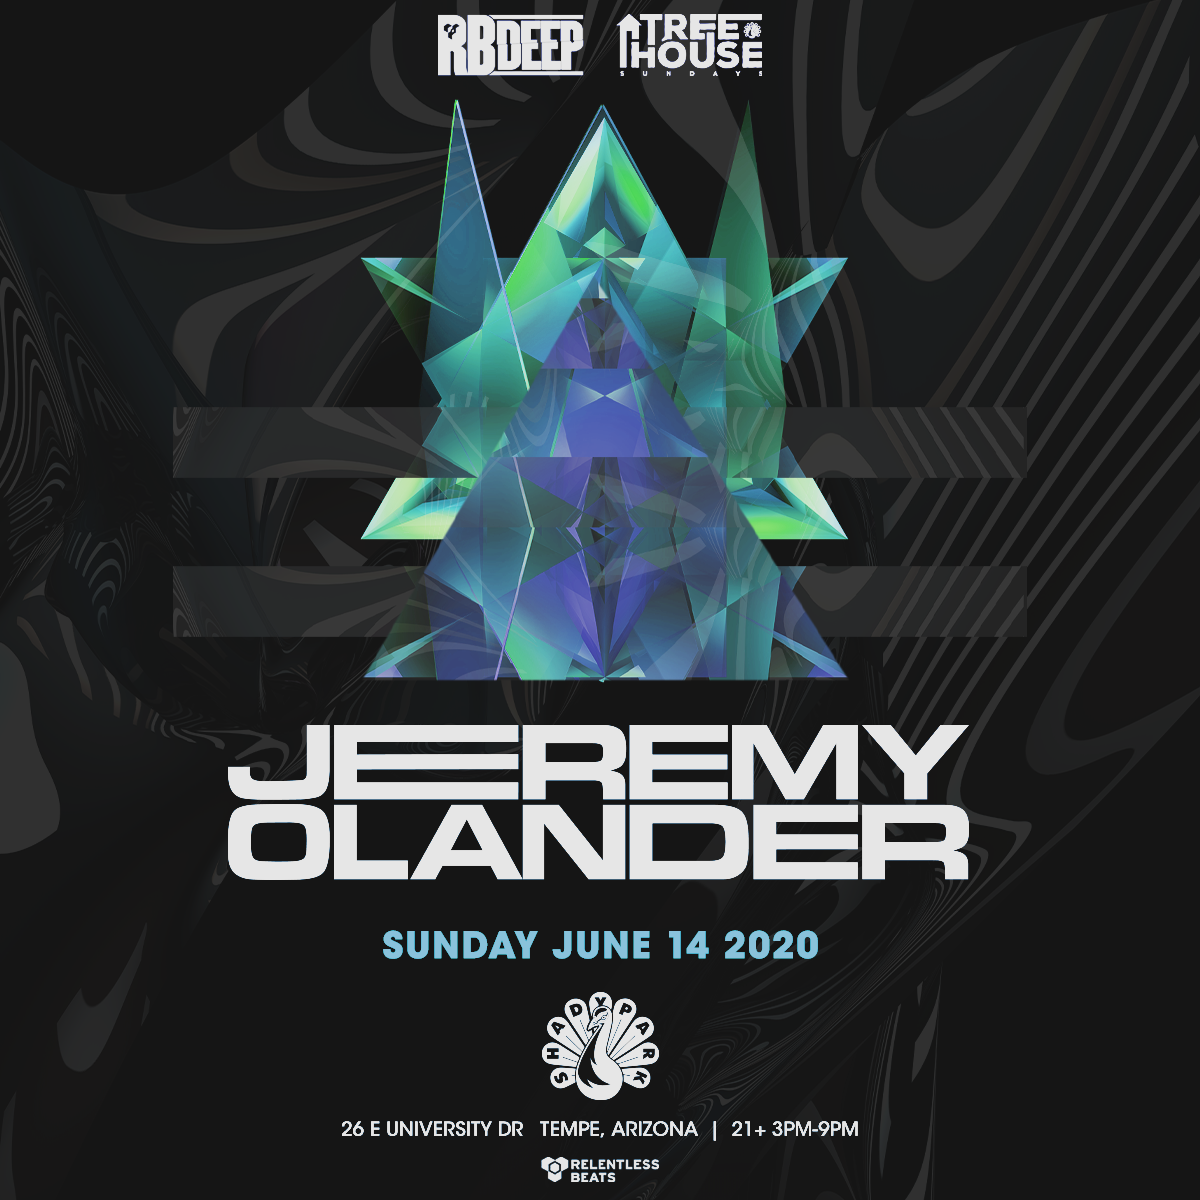 Flyer for Jeremy Olander